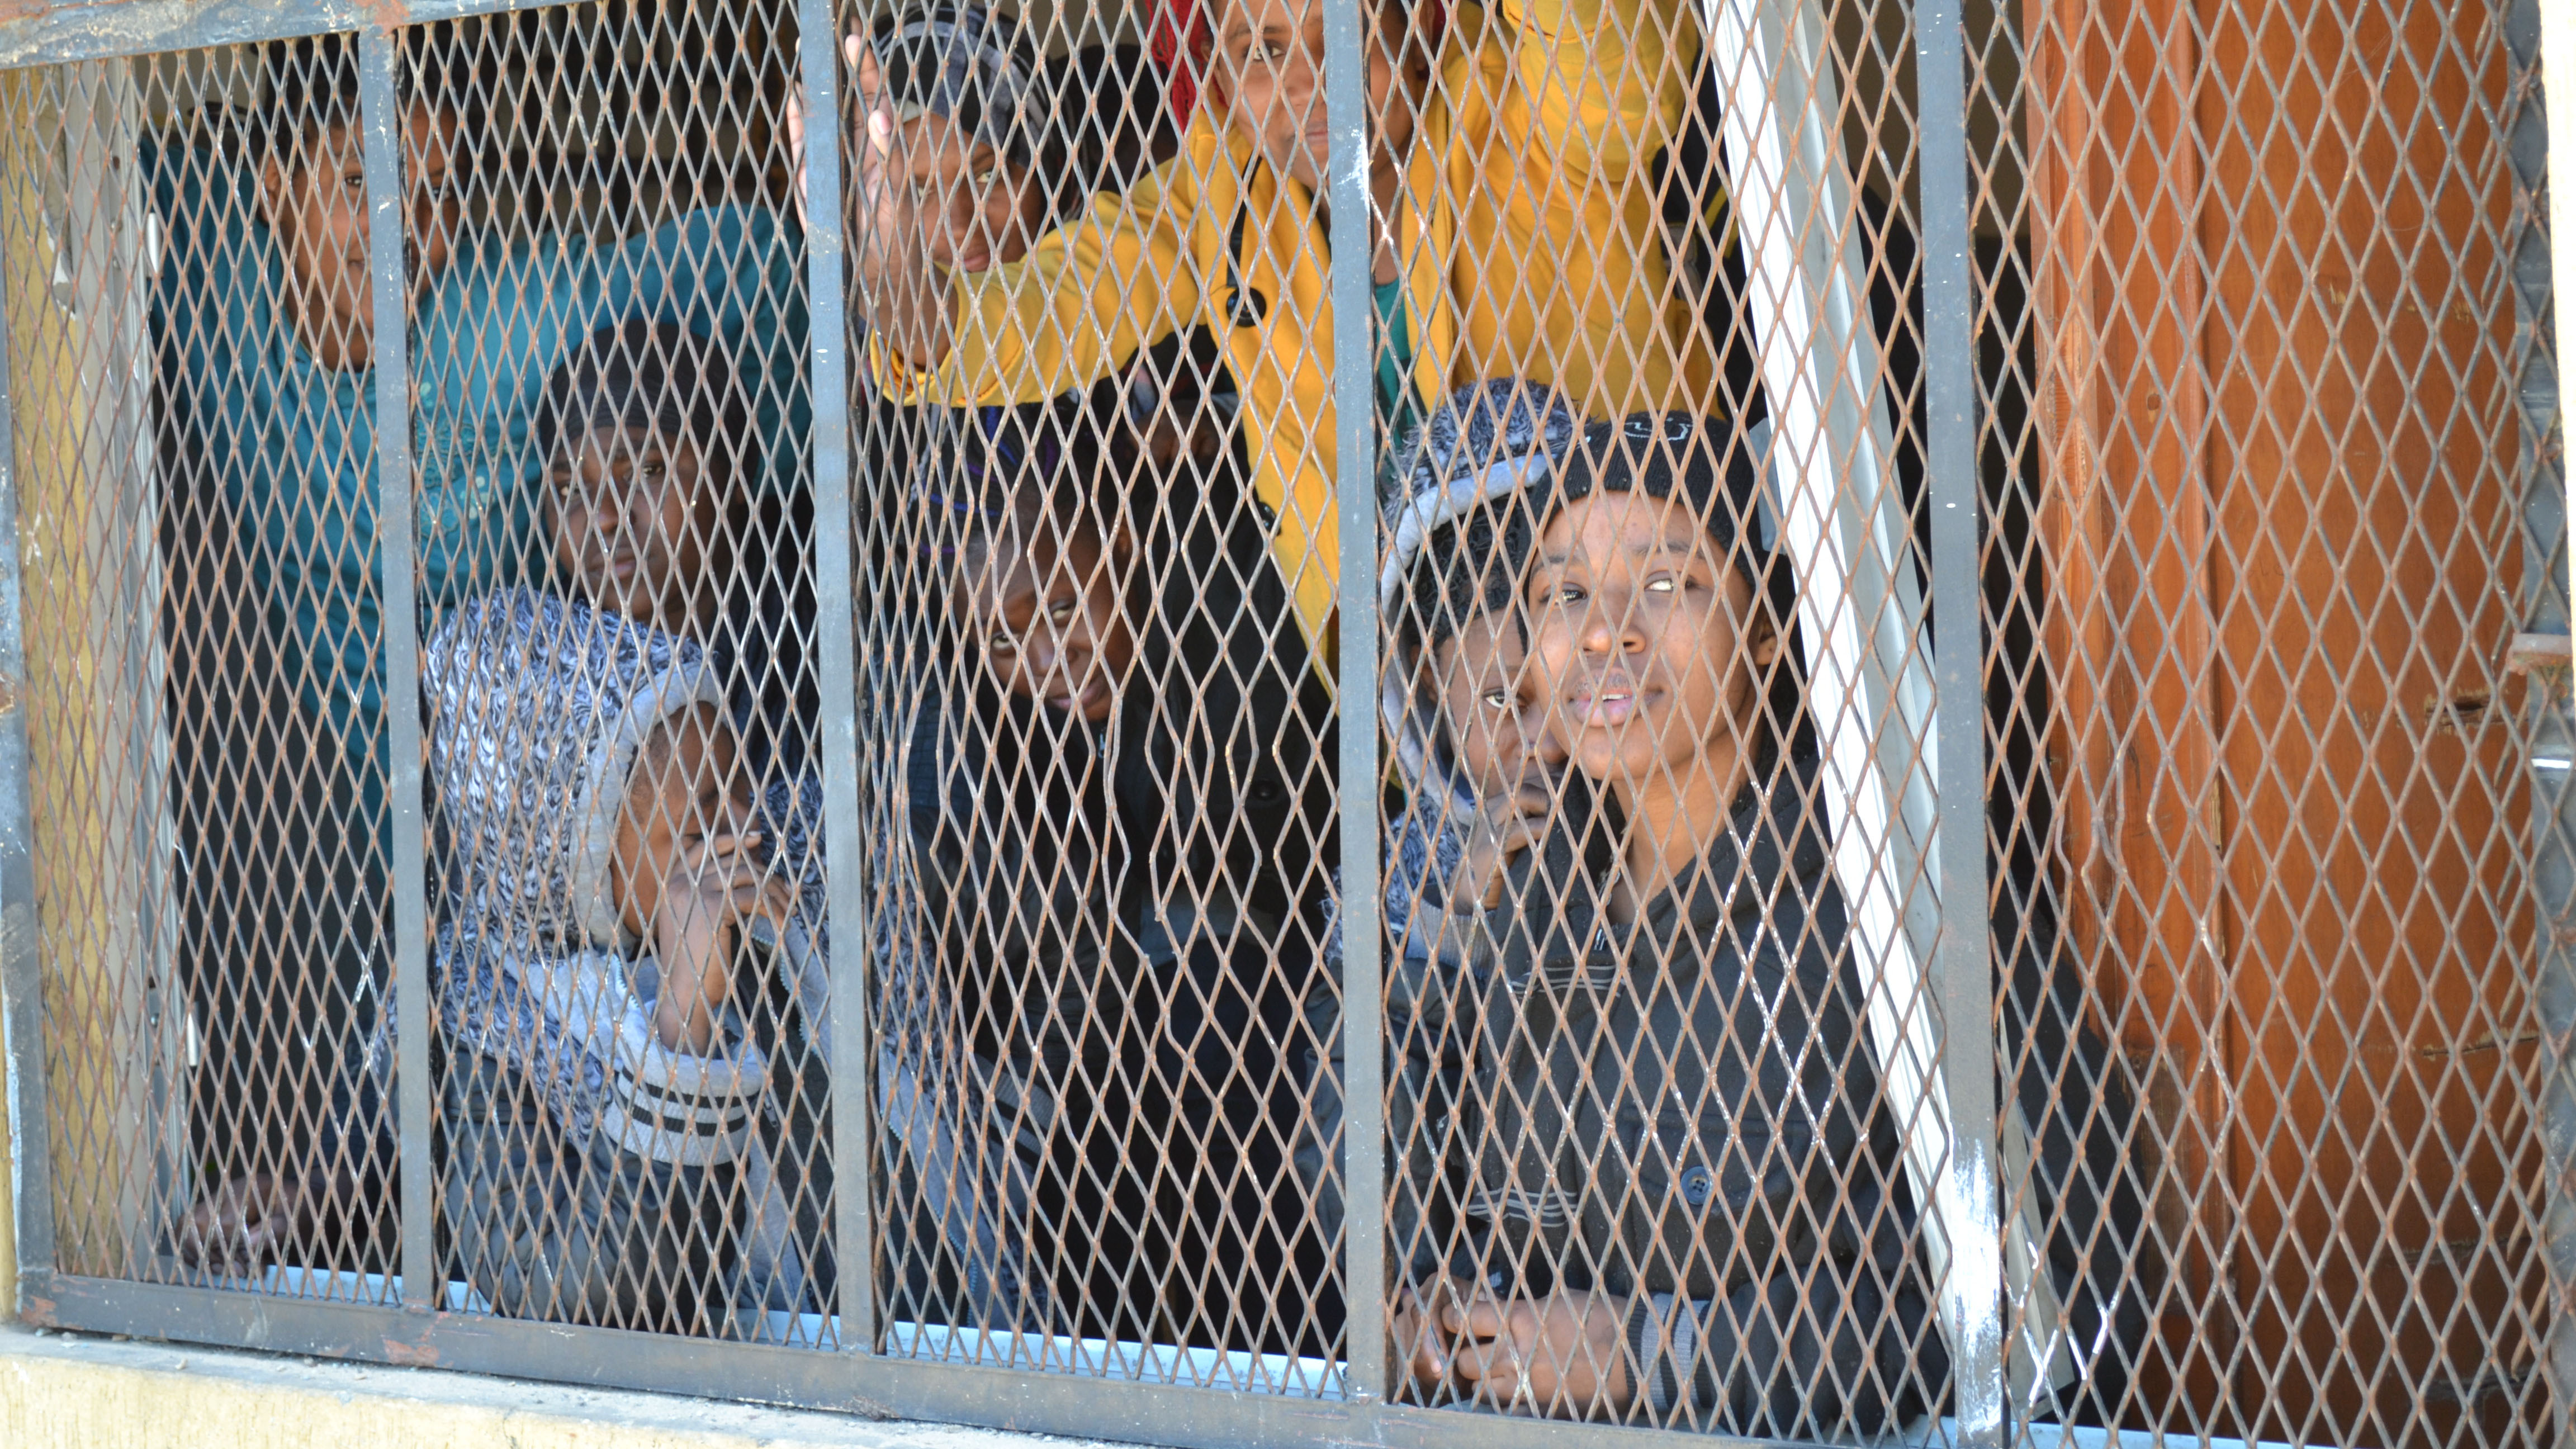 Women at a migrant detention centre in Surnam, Libya